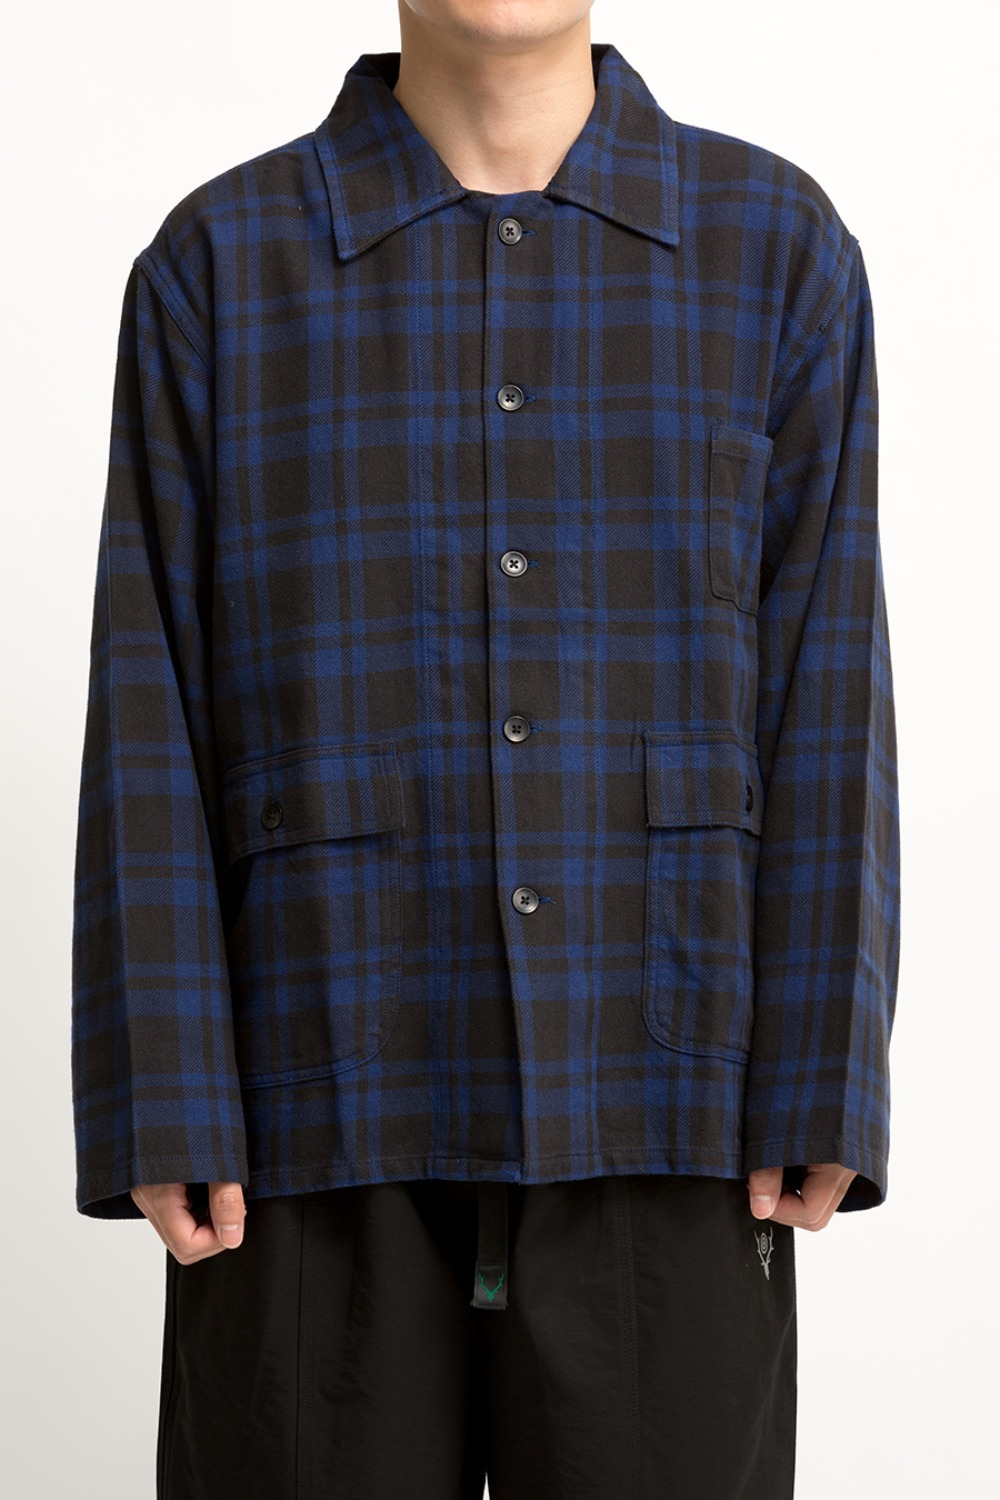 HUNTING SHIRT PLAID TWILL BLACK / BLUE